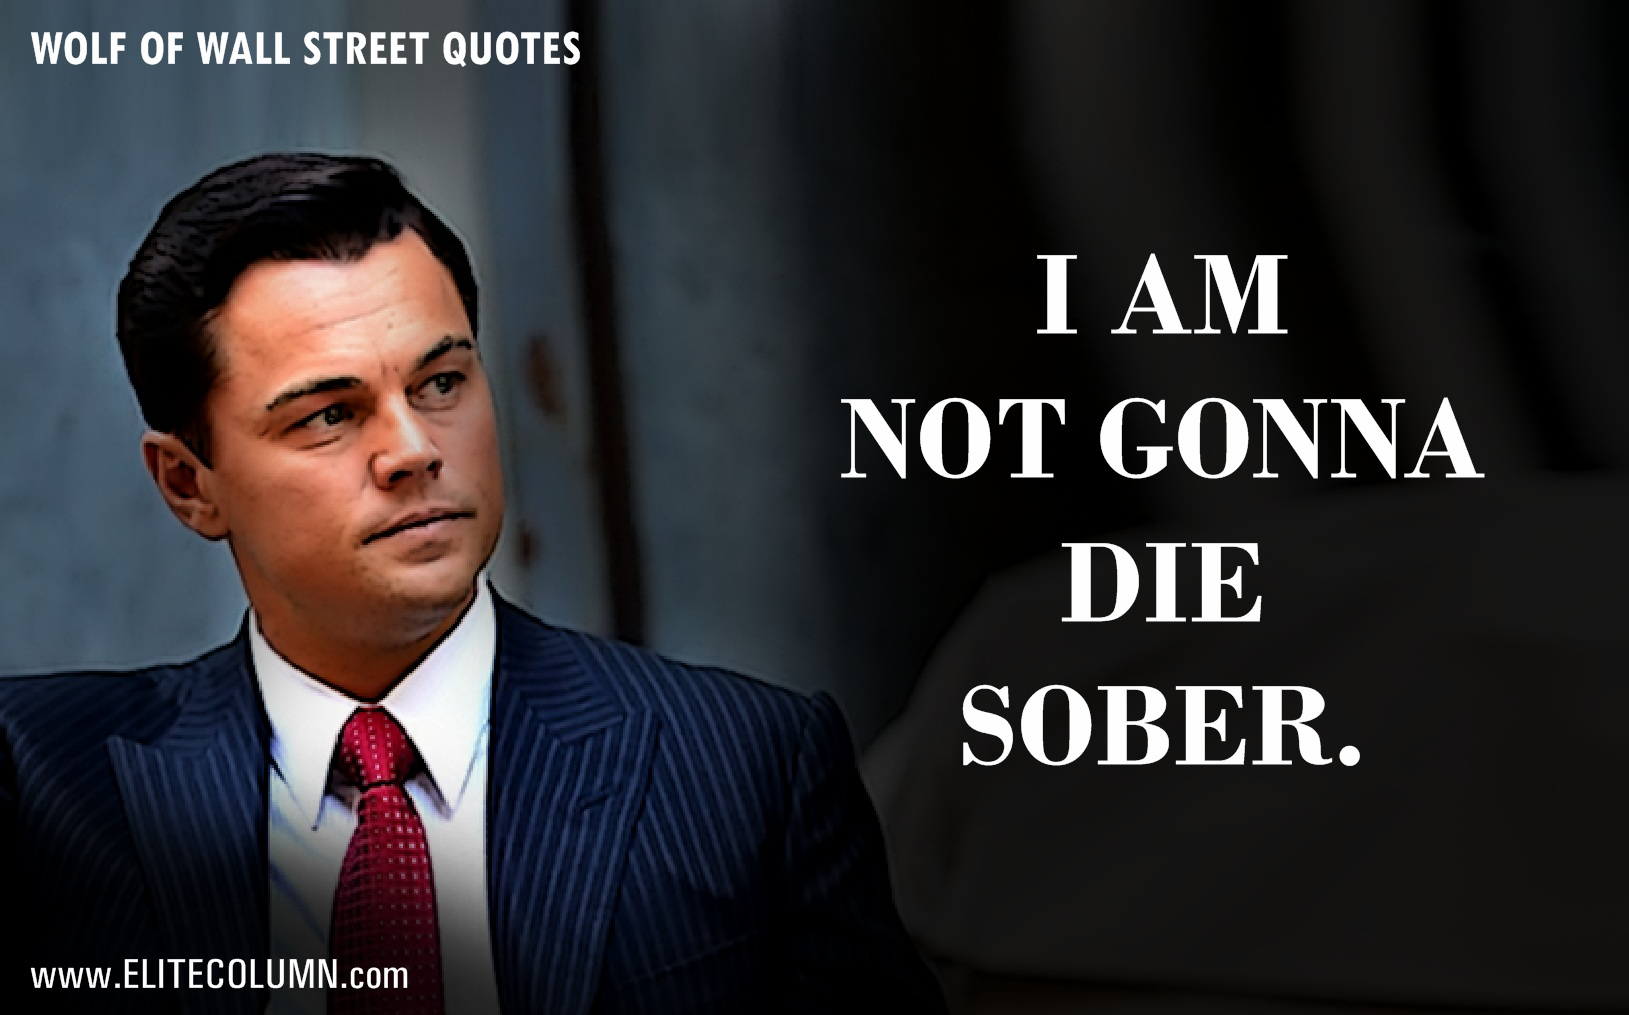 The Wolf Of Wall Street Quotes (11)